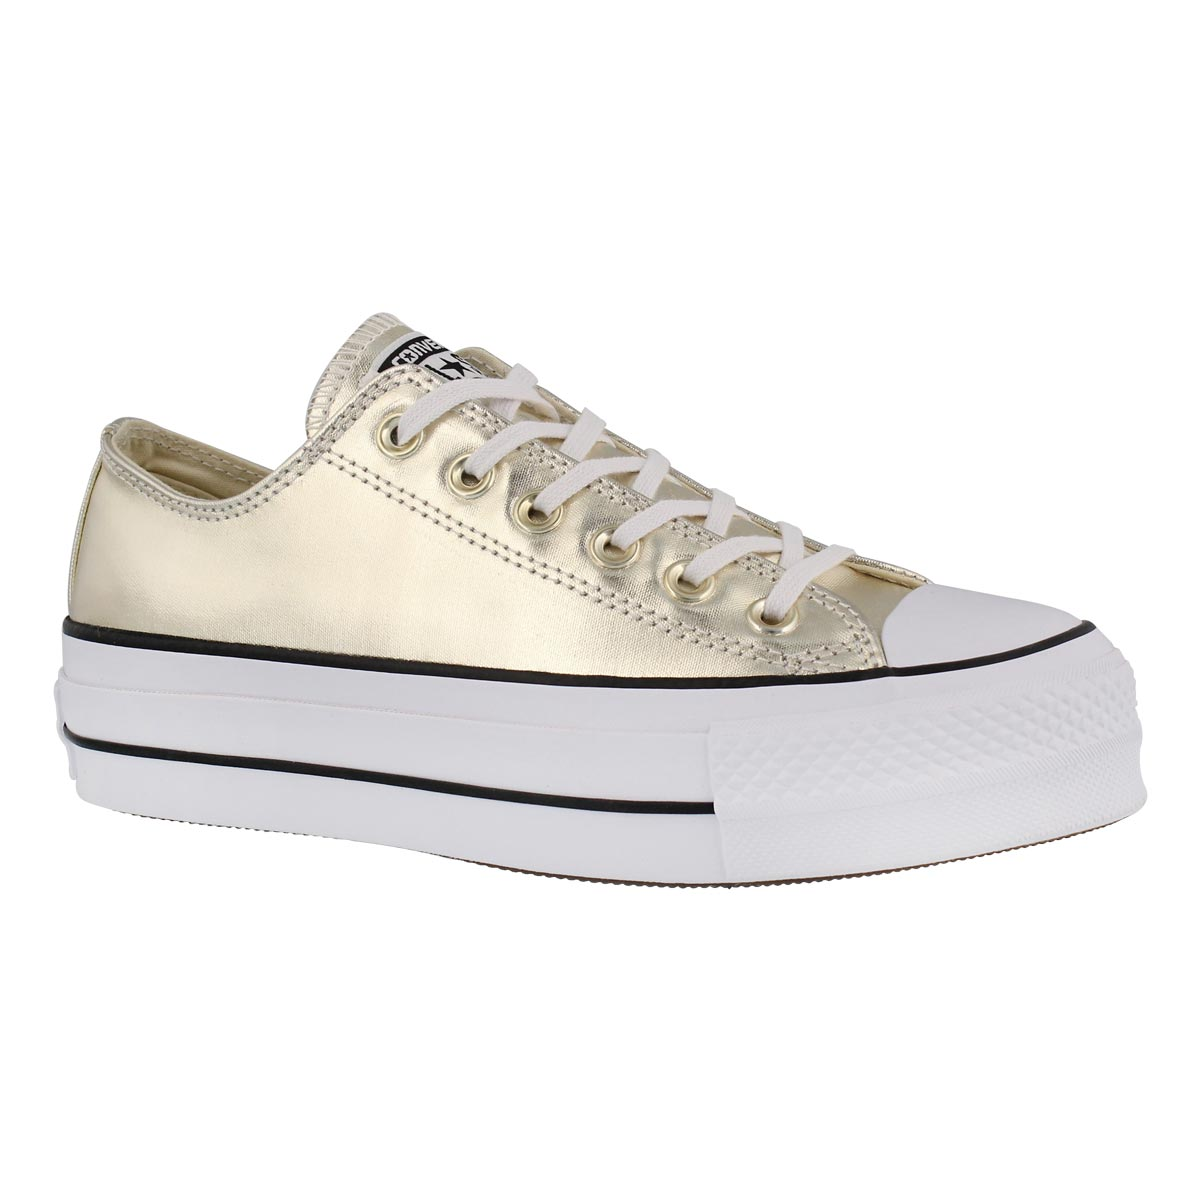 Women's CT ALL STAR LIFT METALLIC gold sneakers